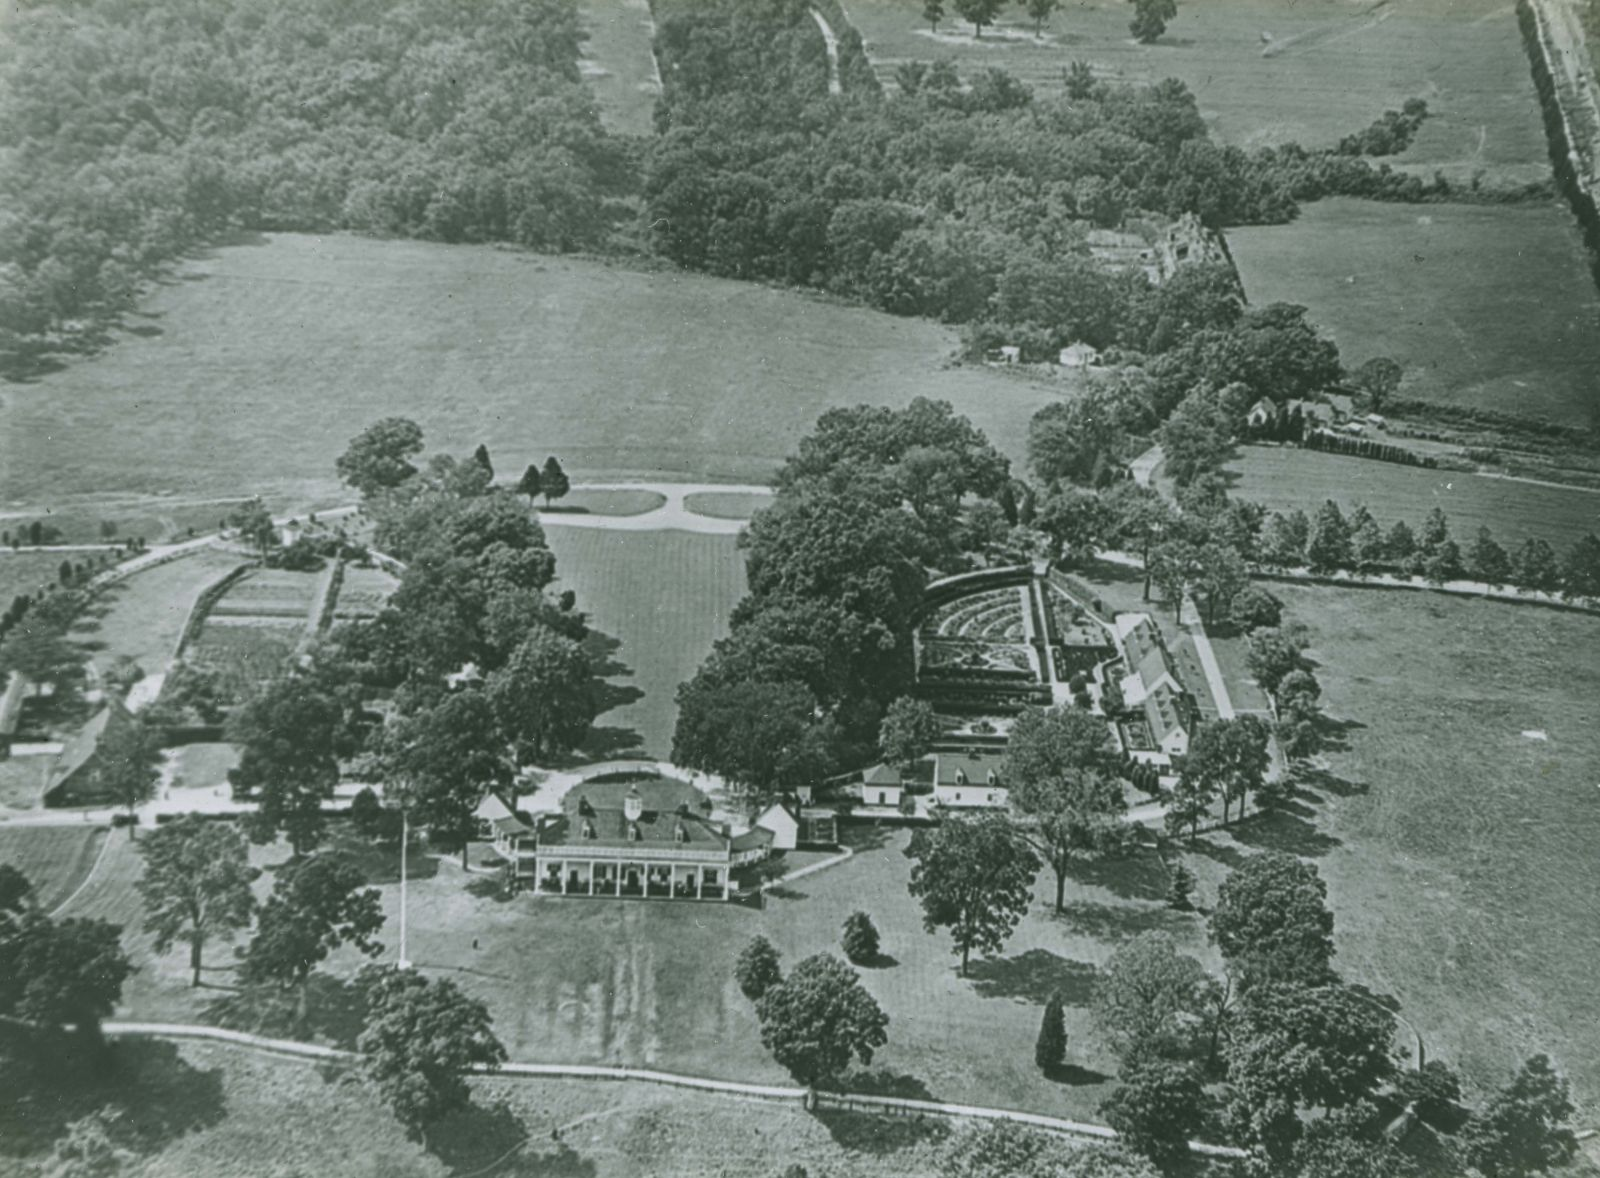 A black and white aerial photo shows the side of the Mansion with large pillars. On the right is a formal garden. Surrounding everything is farmland and woods.